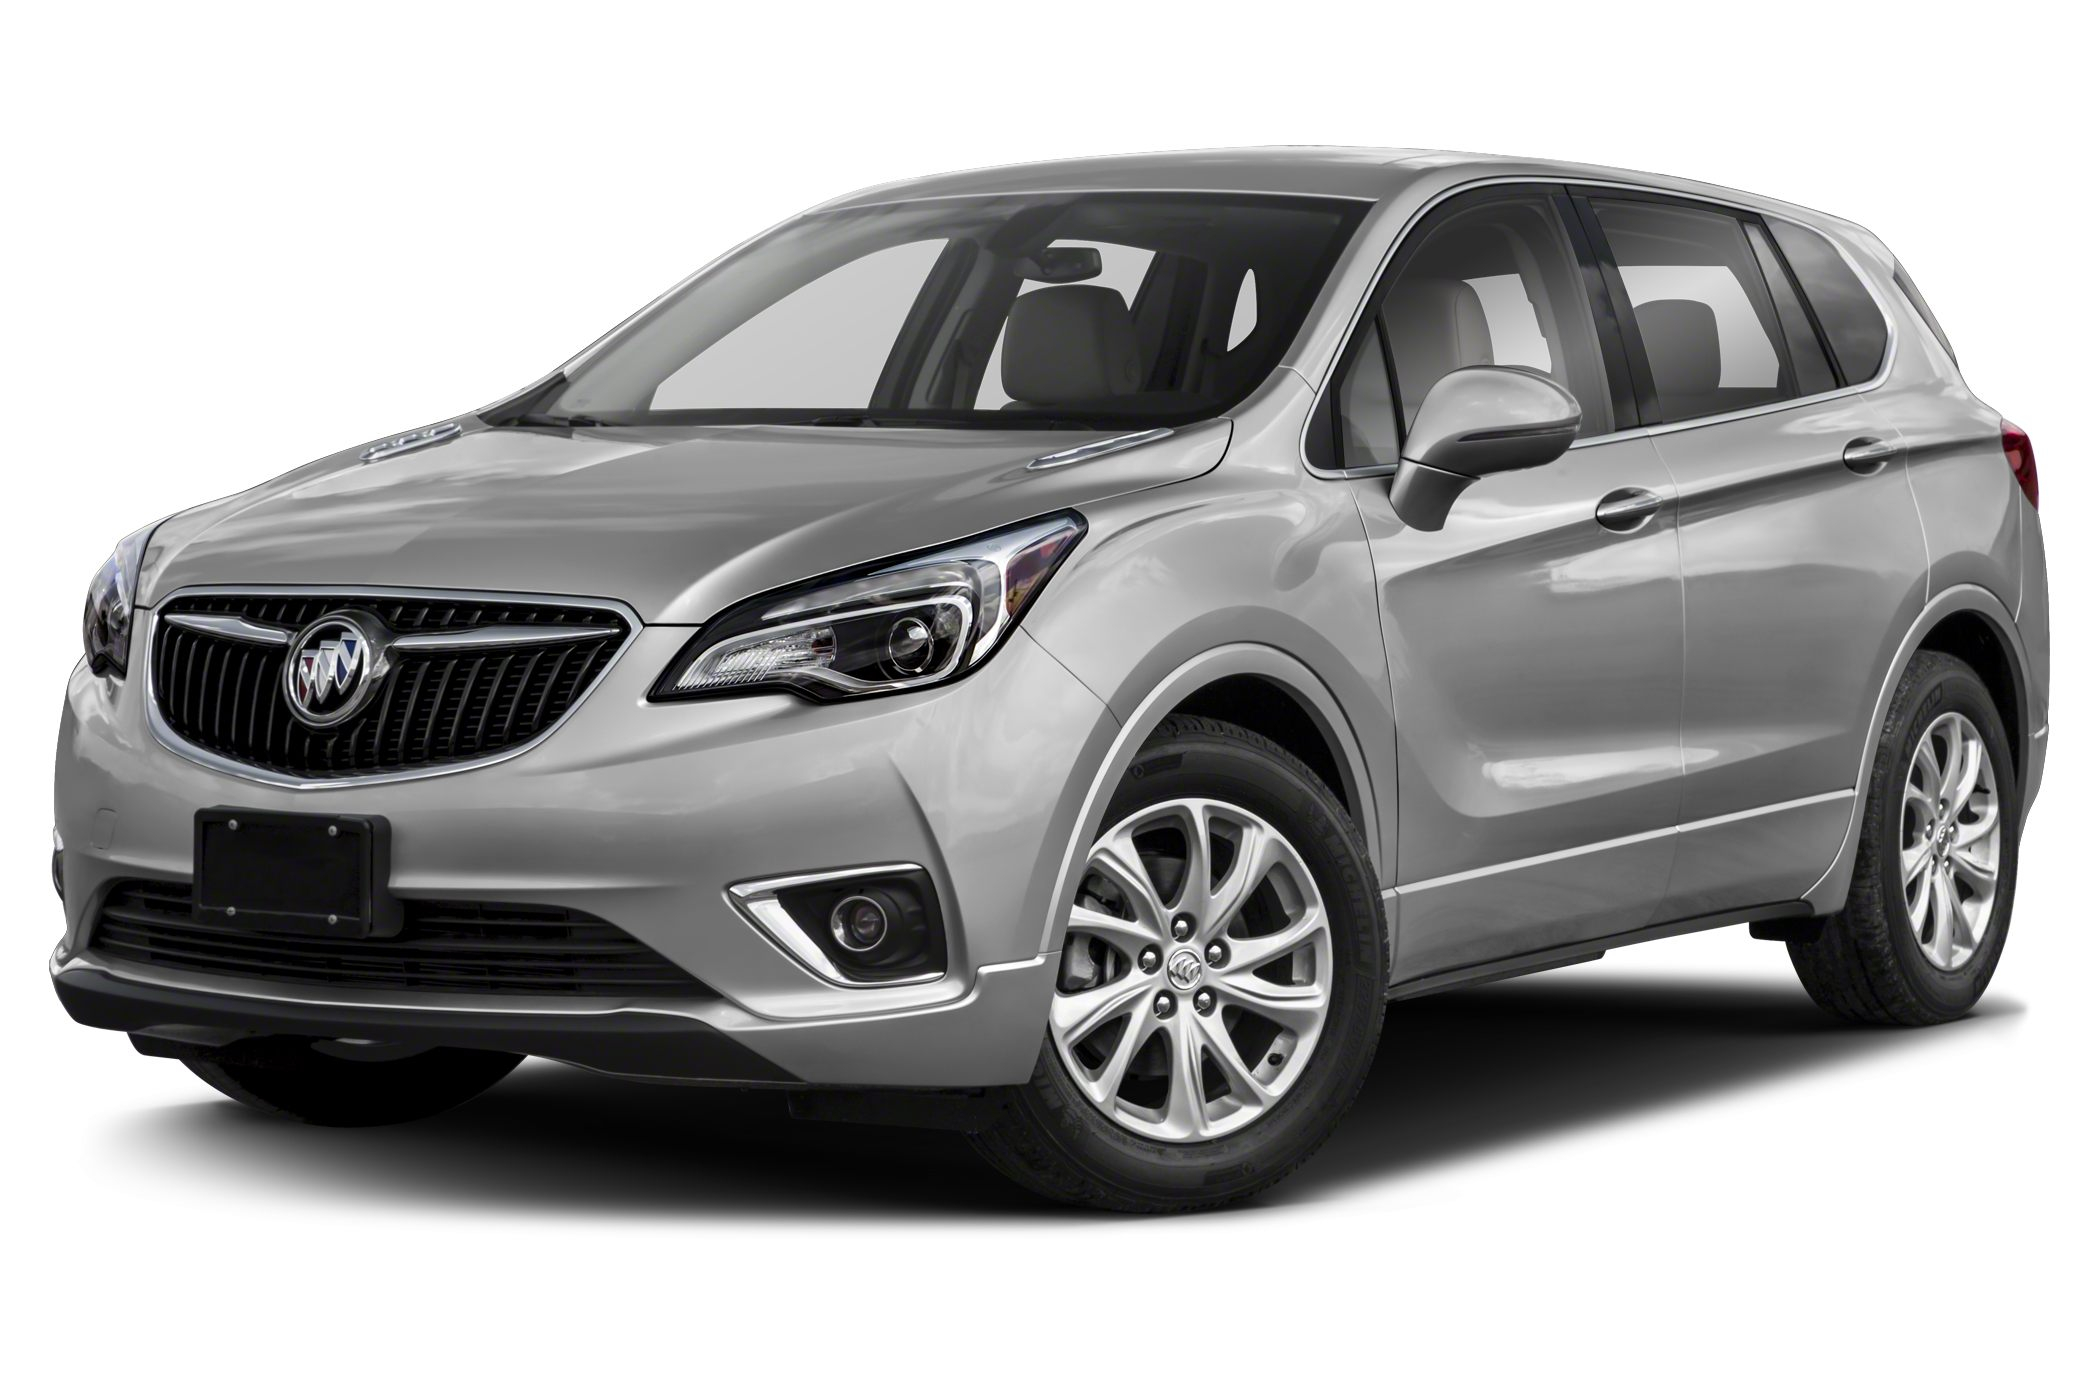 2020 Buick Envision Specs And Prices New 2021 Buick Envision Build, Lease, Cost